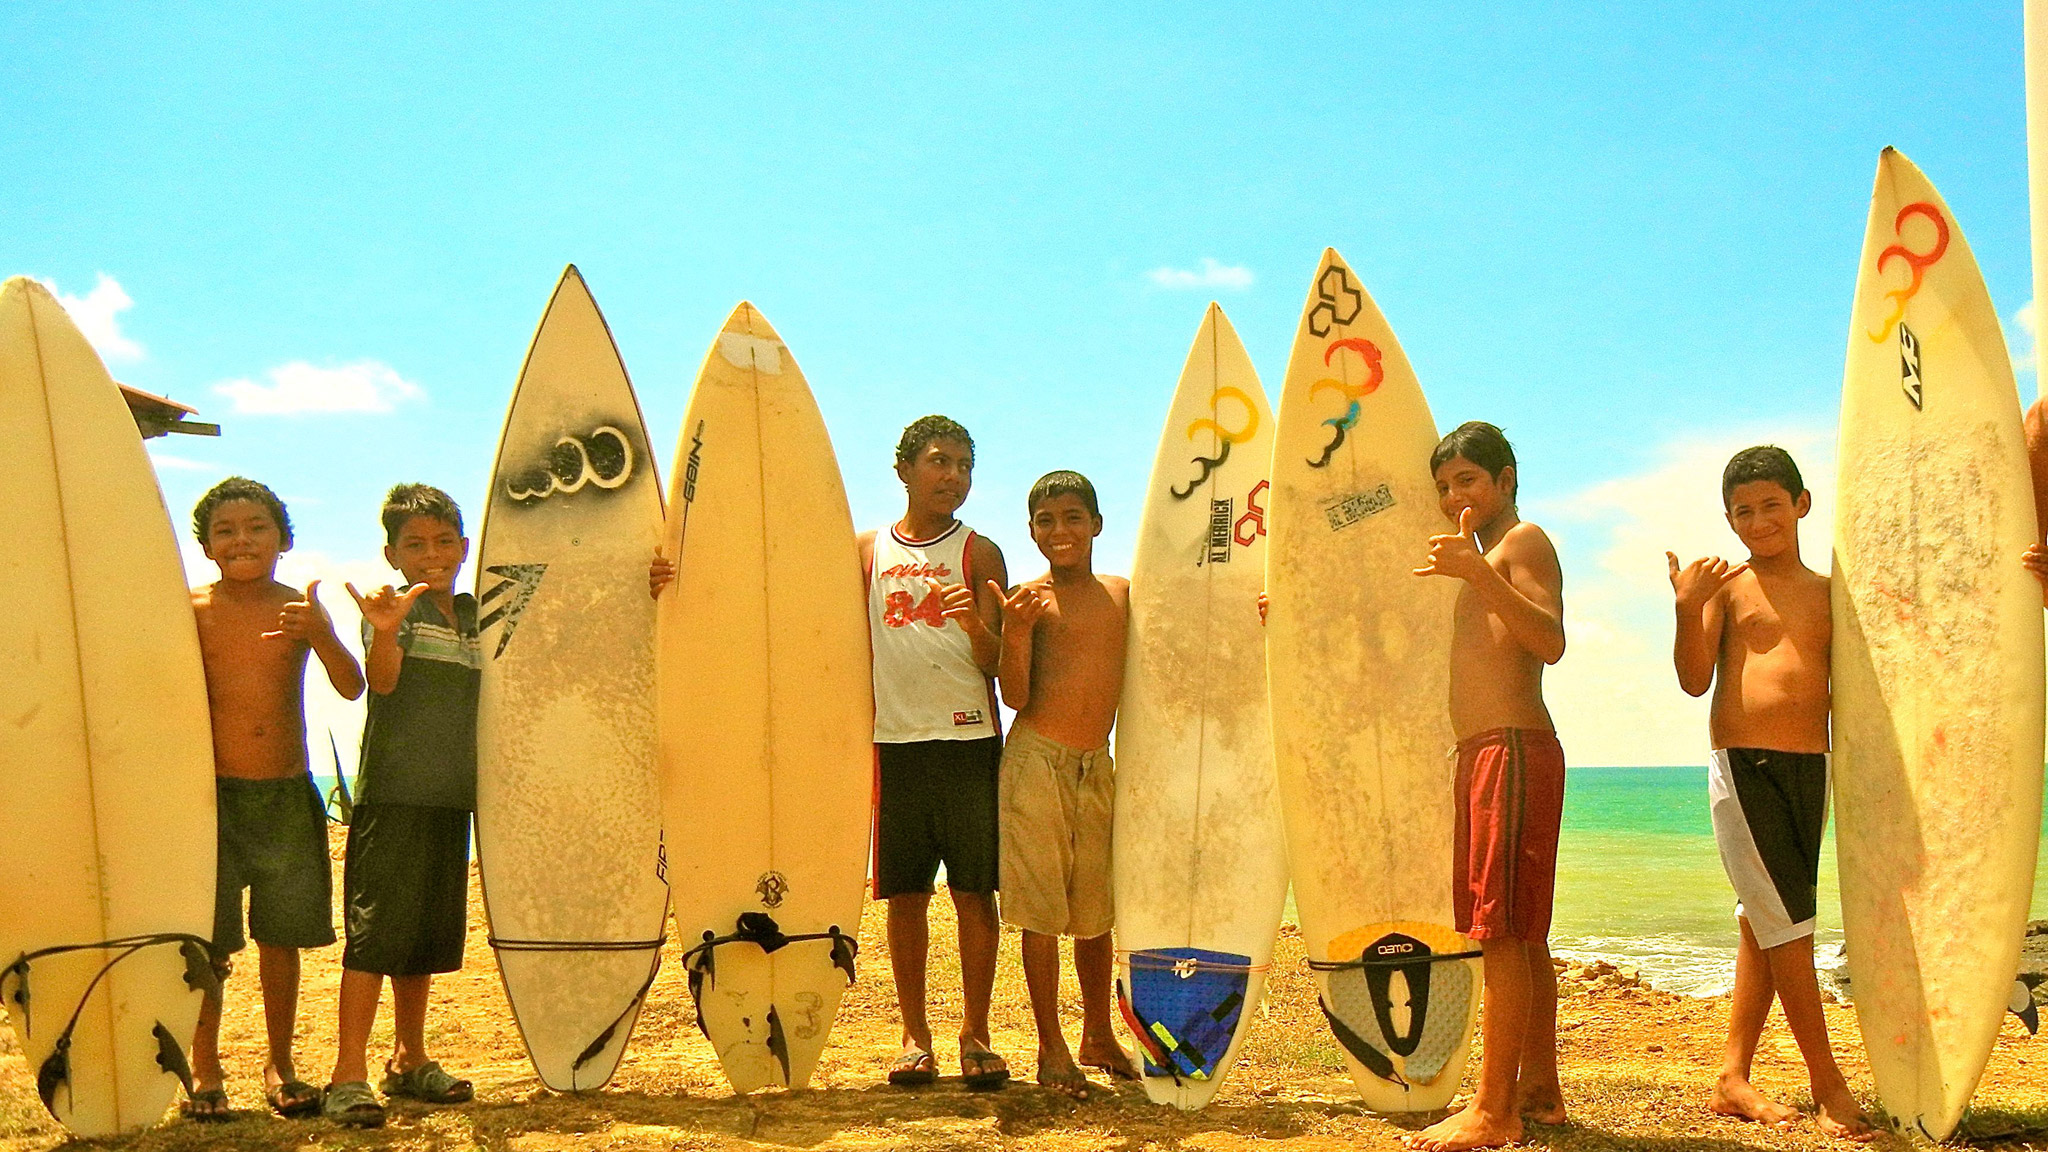 The message is hand ups, not handouts. After a day of cleaning the beaches, the local groms are ready to get wet.